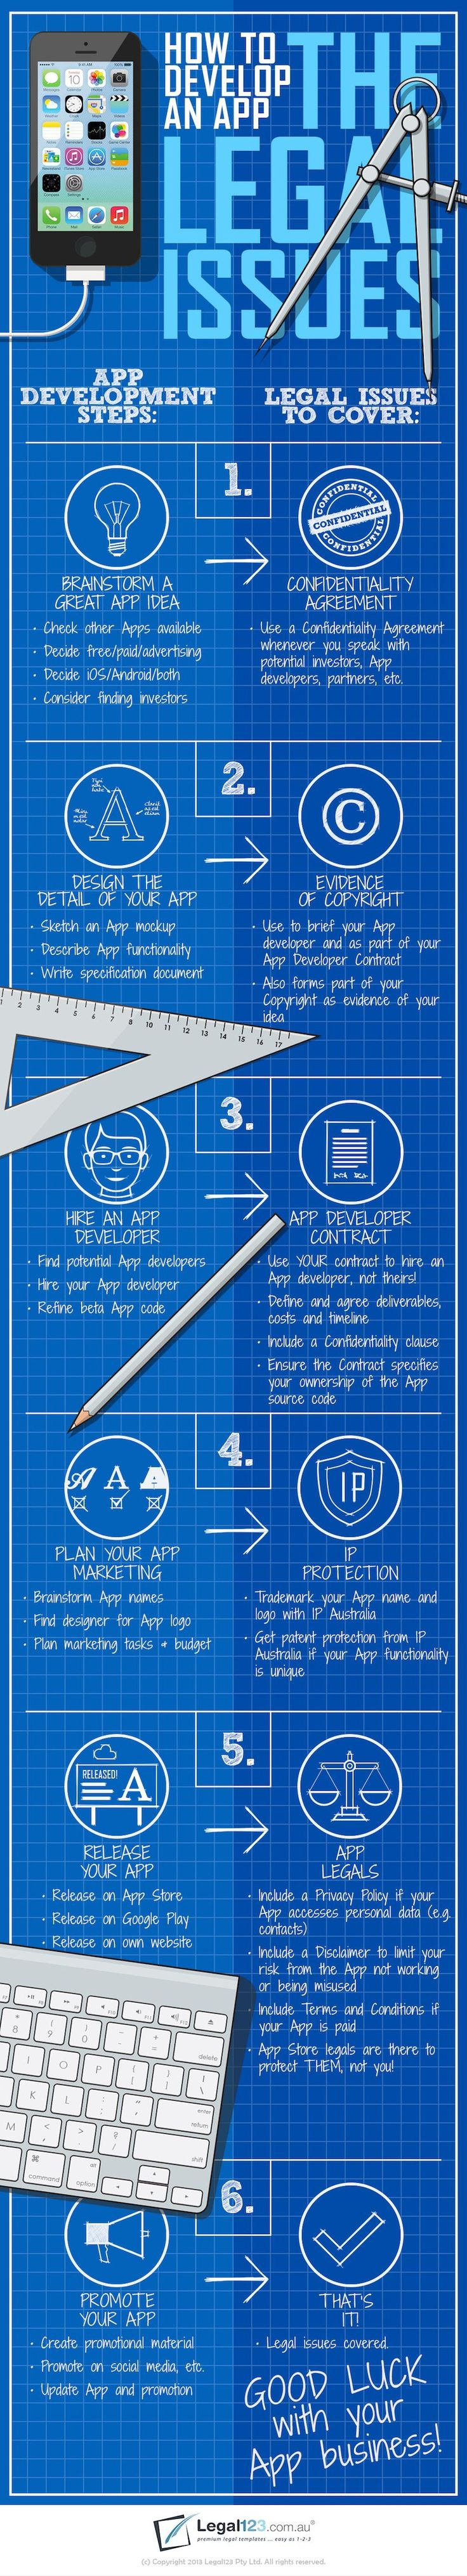 Desarrollo de APPs y aspectos legales #infografia #infographic #software